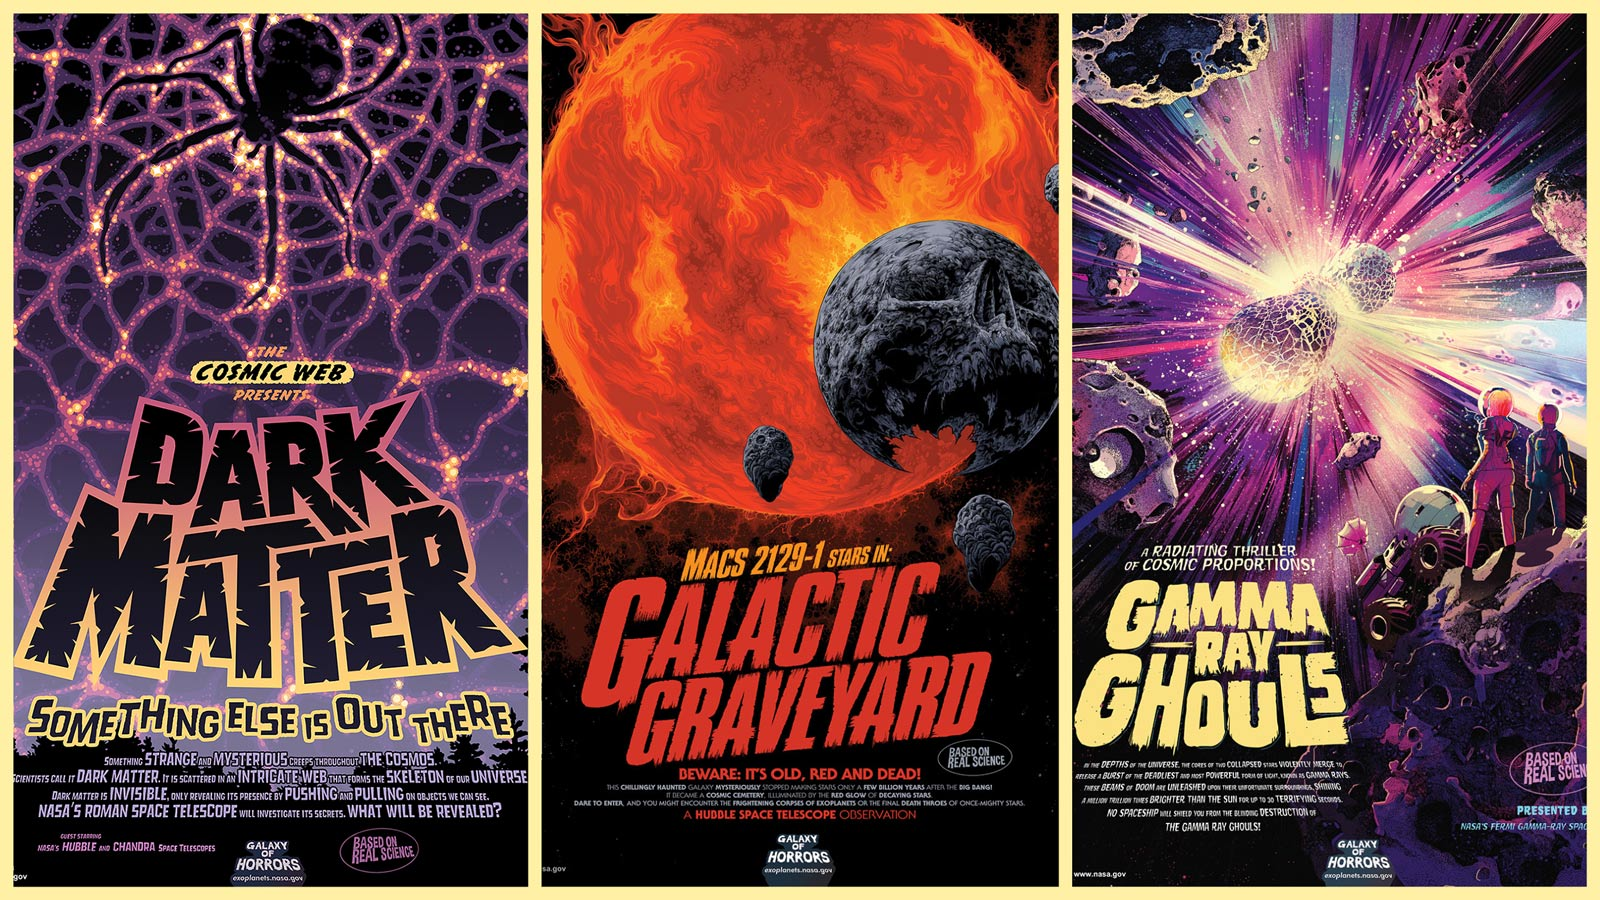 Grab these spooky (and free) NASA space  posters to haunt your Halloween